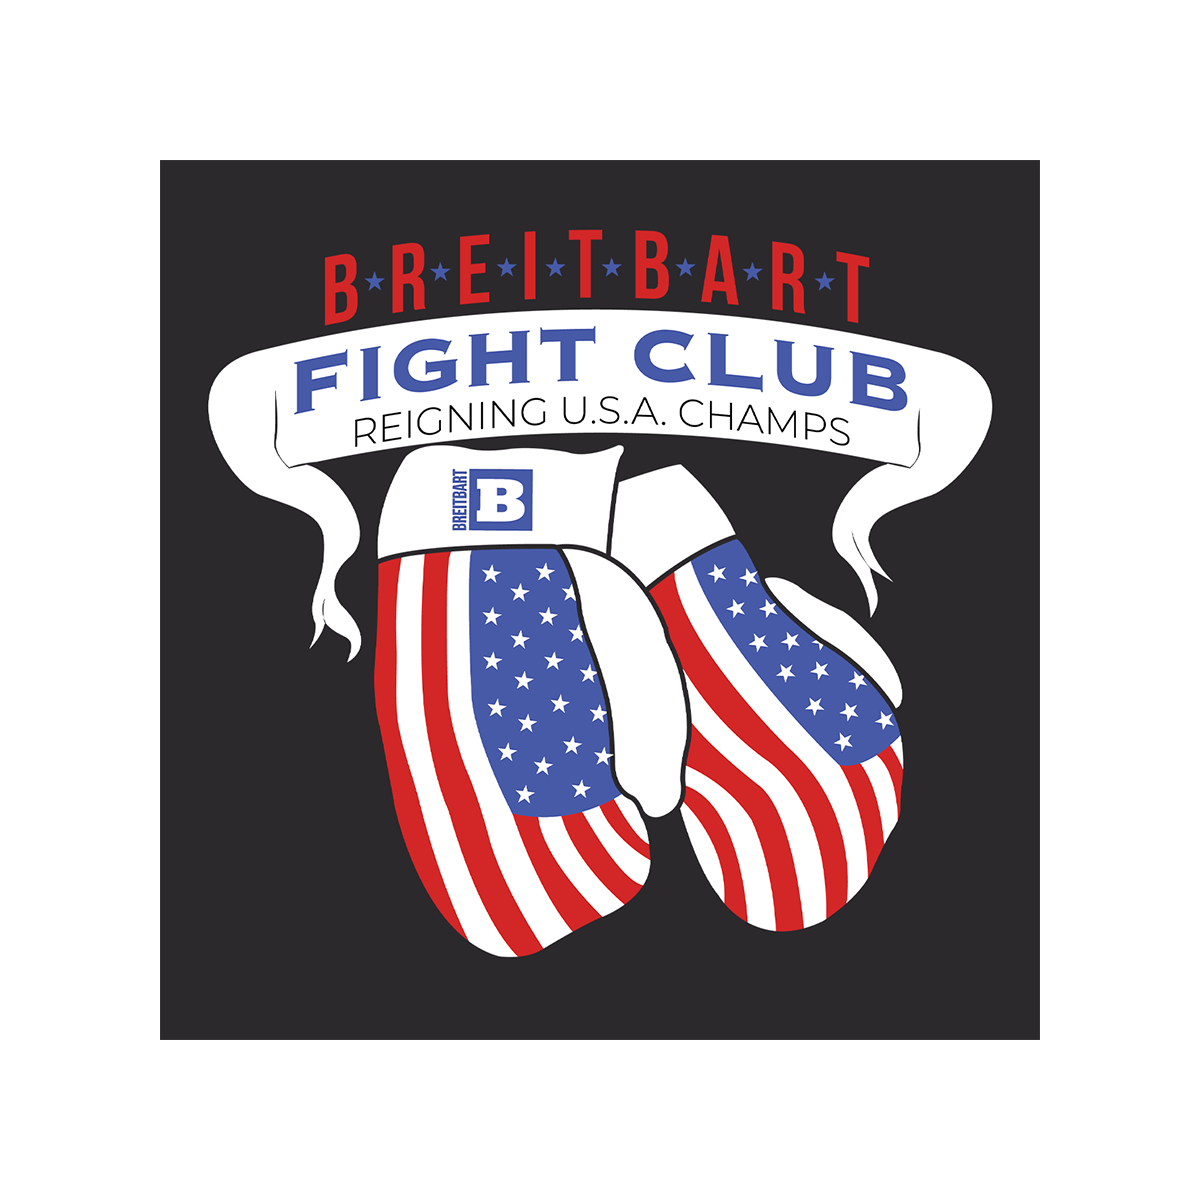 Breitbart Fight Club USA Champs T-shirt - Black